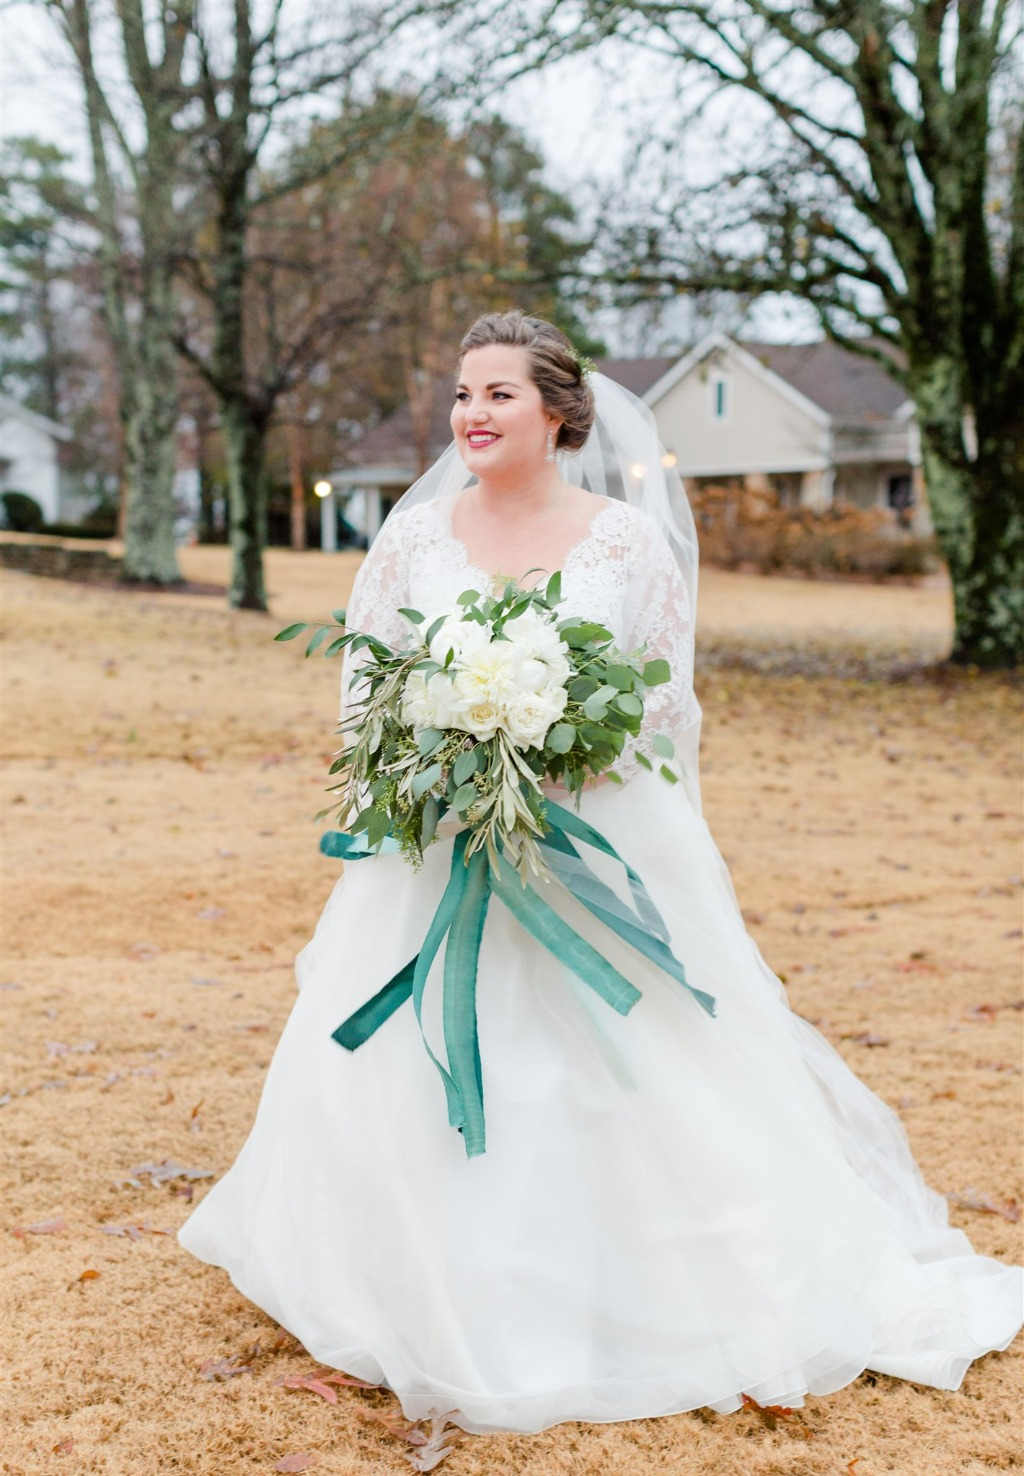 MEGAN + JEFF'S EMERALD AND WHITE WEDDING